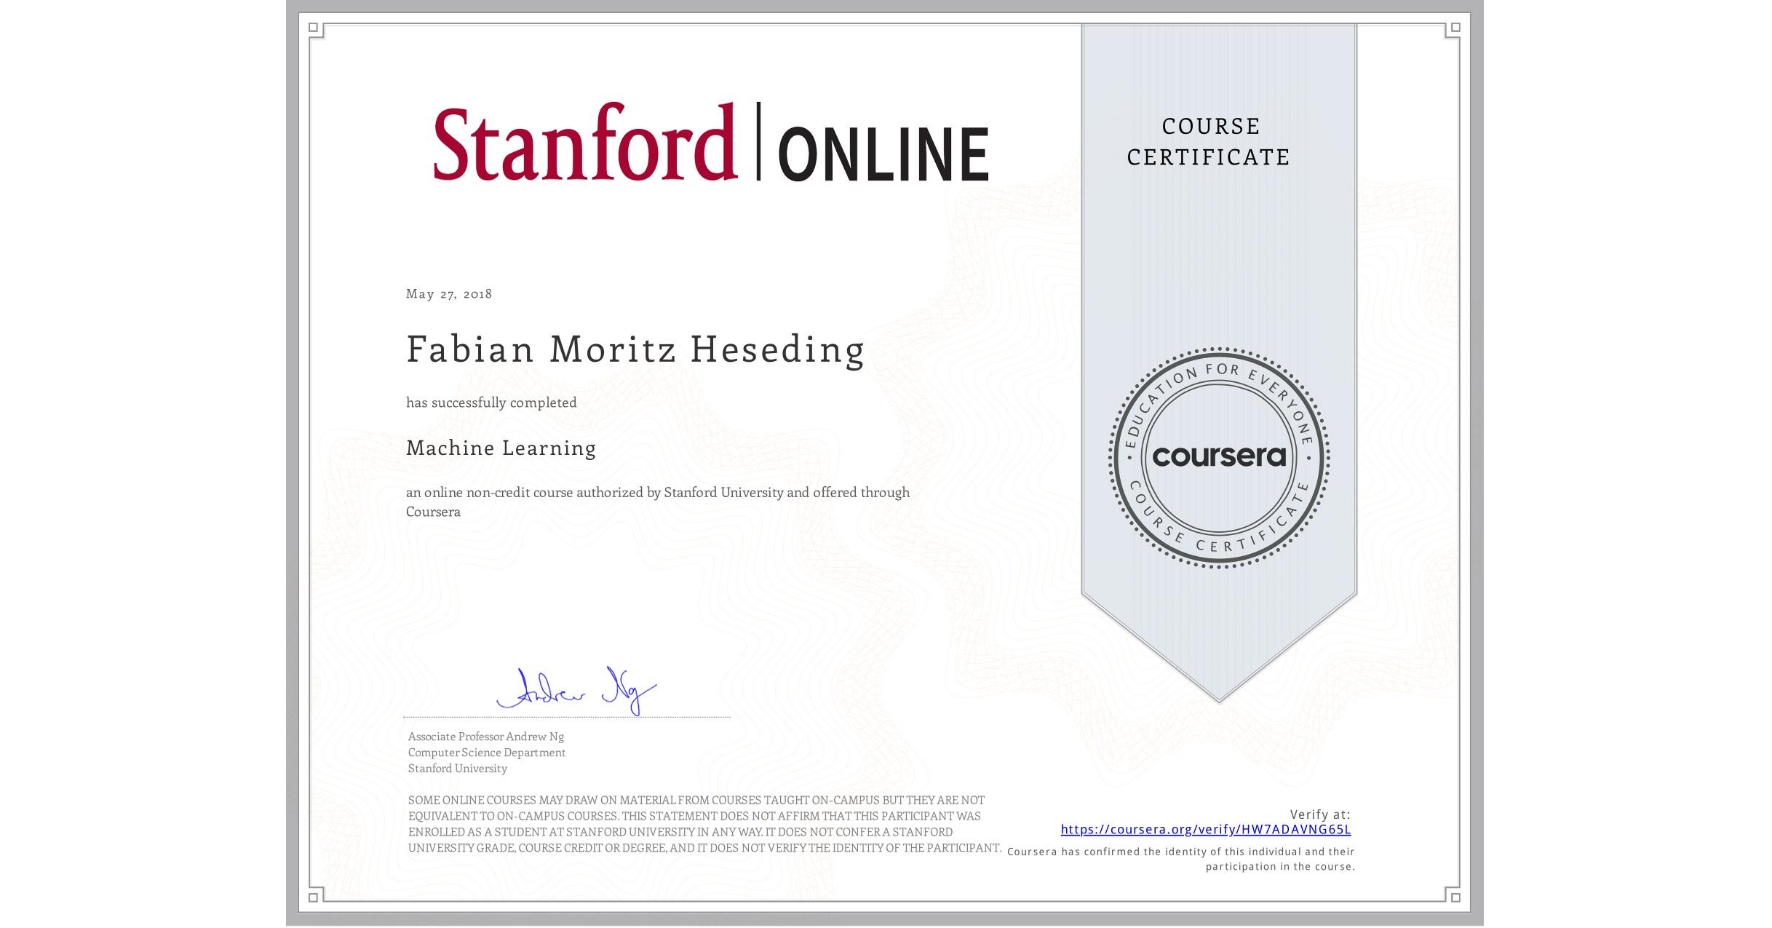 View certificate for Fabian Moritz Heseding, Machine Learning, an online non-credit course authorized by Stanford University and offered through Coursera